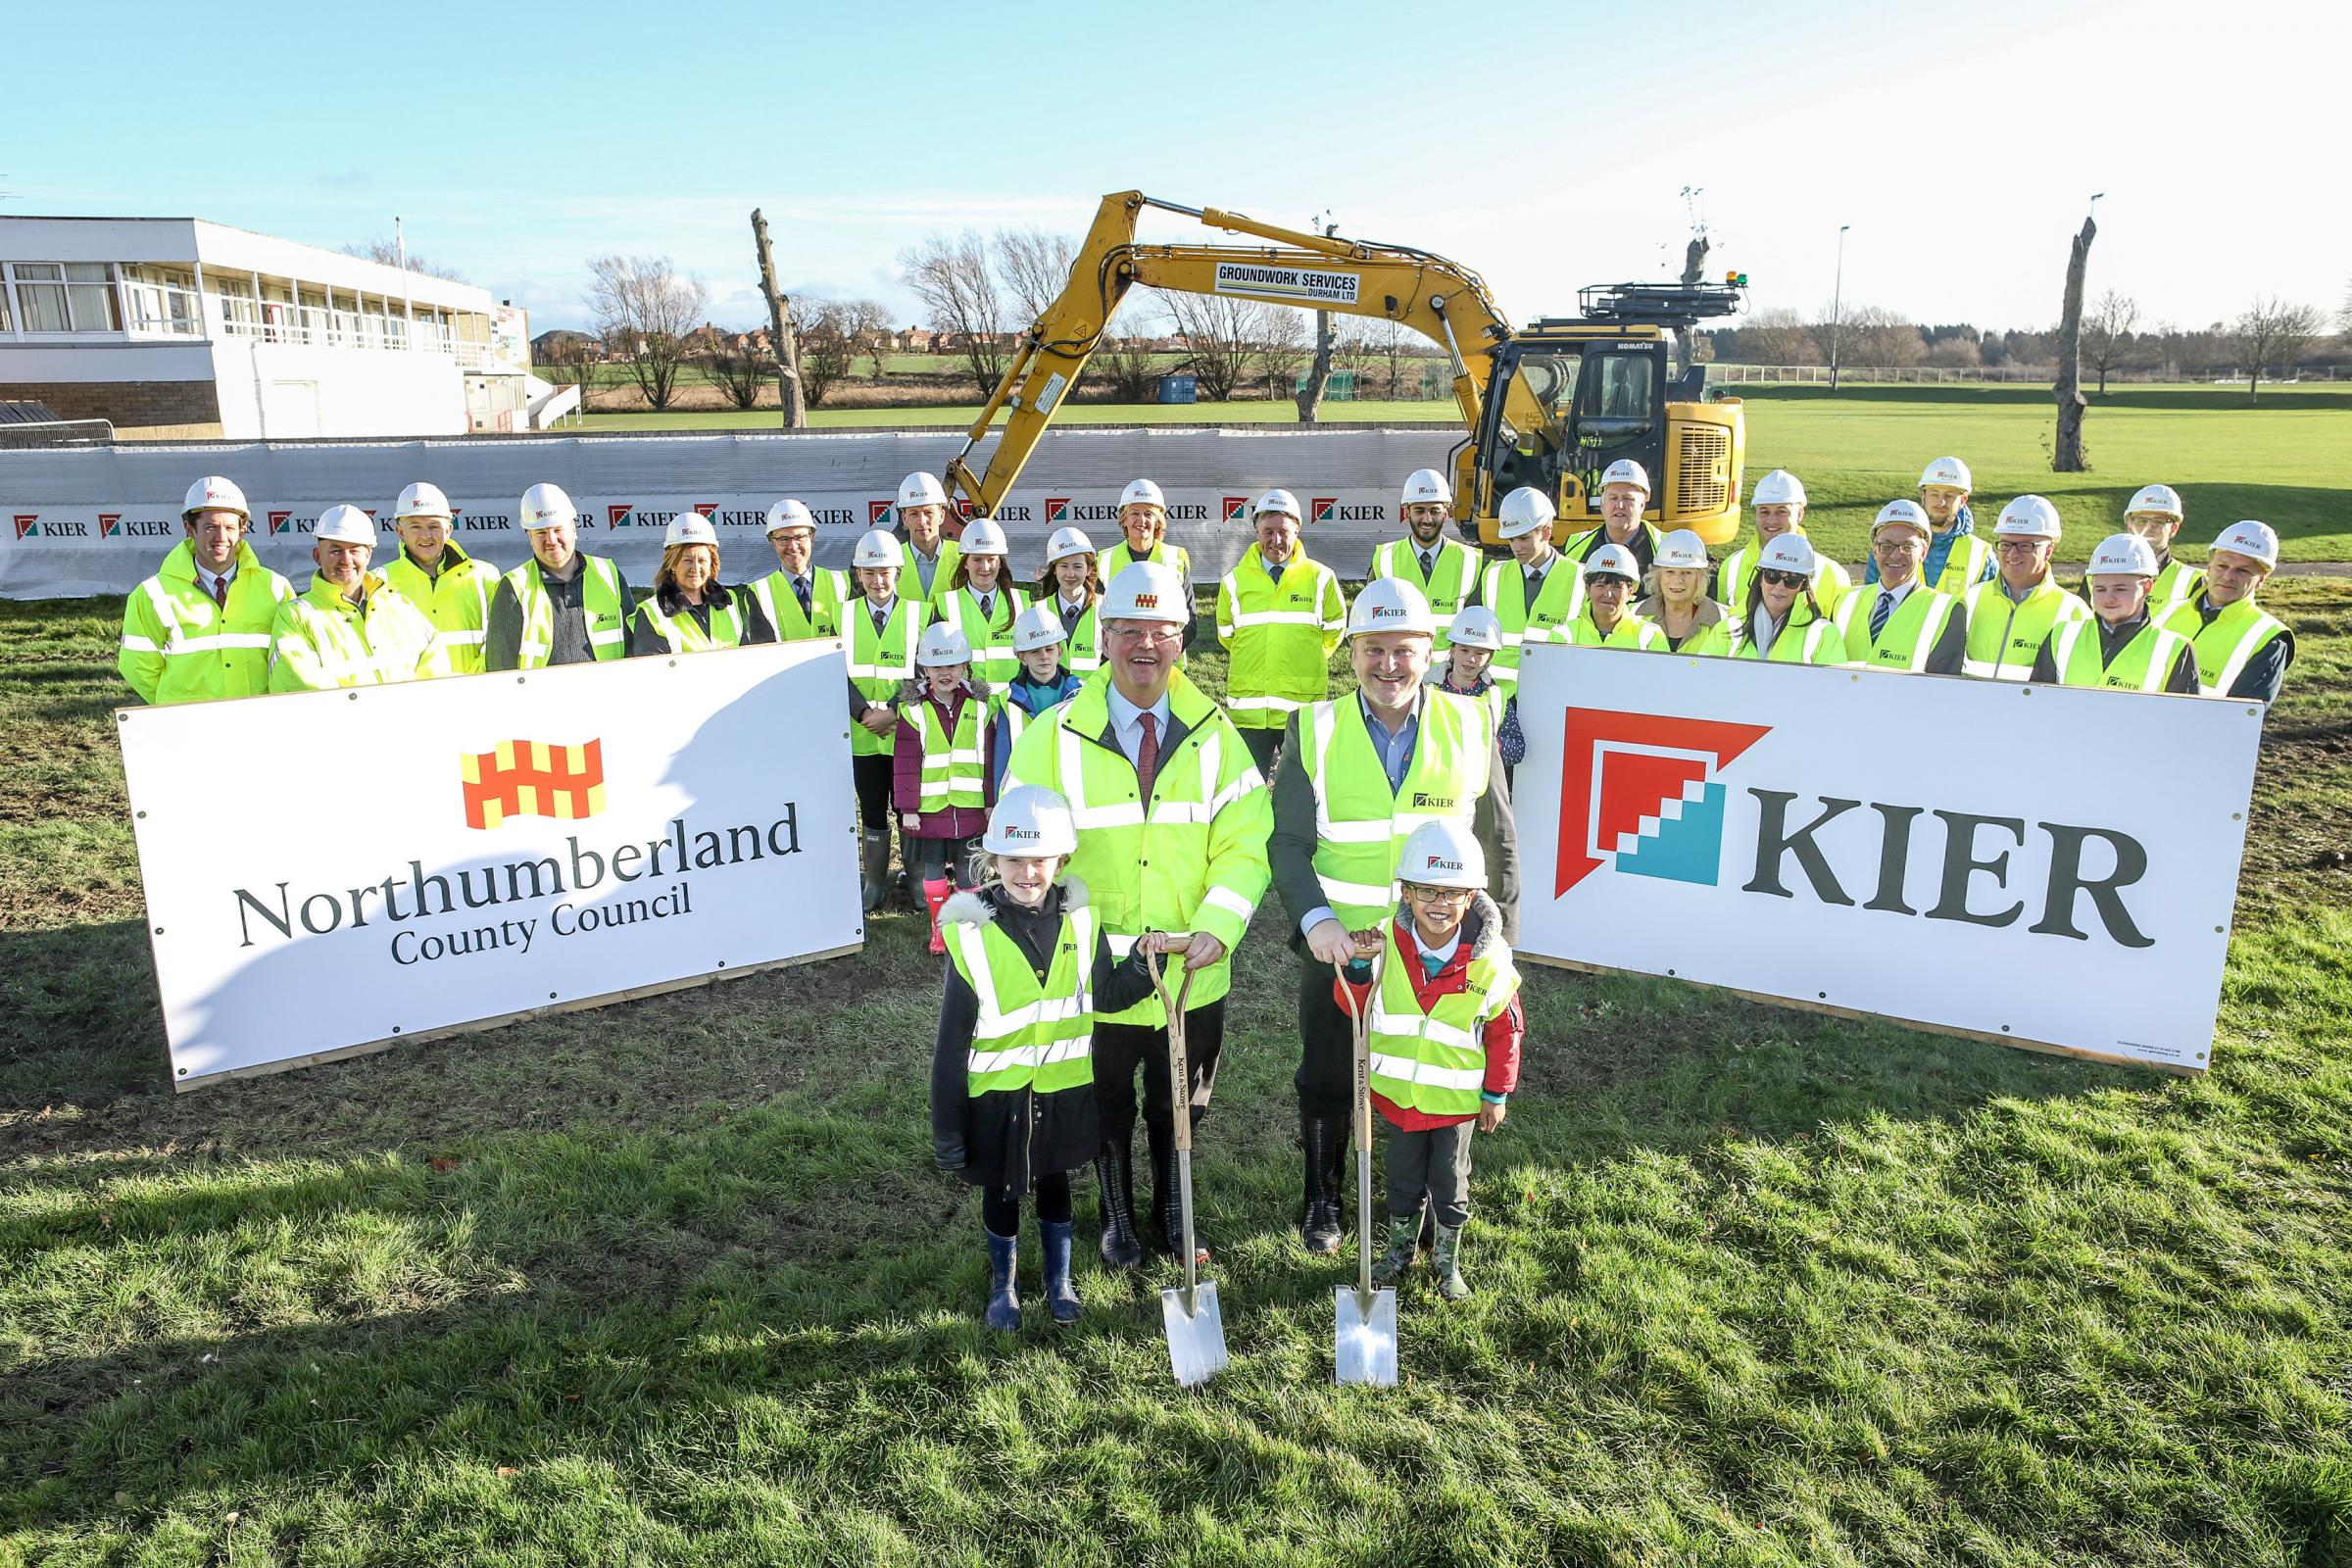 Coun. Peter Jackson, leader, and Coun. Wayne Daley, deputy leader and cabinet member for children's services (left to right at front), cutting the first turf at the Ponteland Schools development - along with students and headteachers from Ponteland